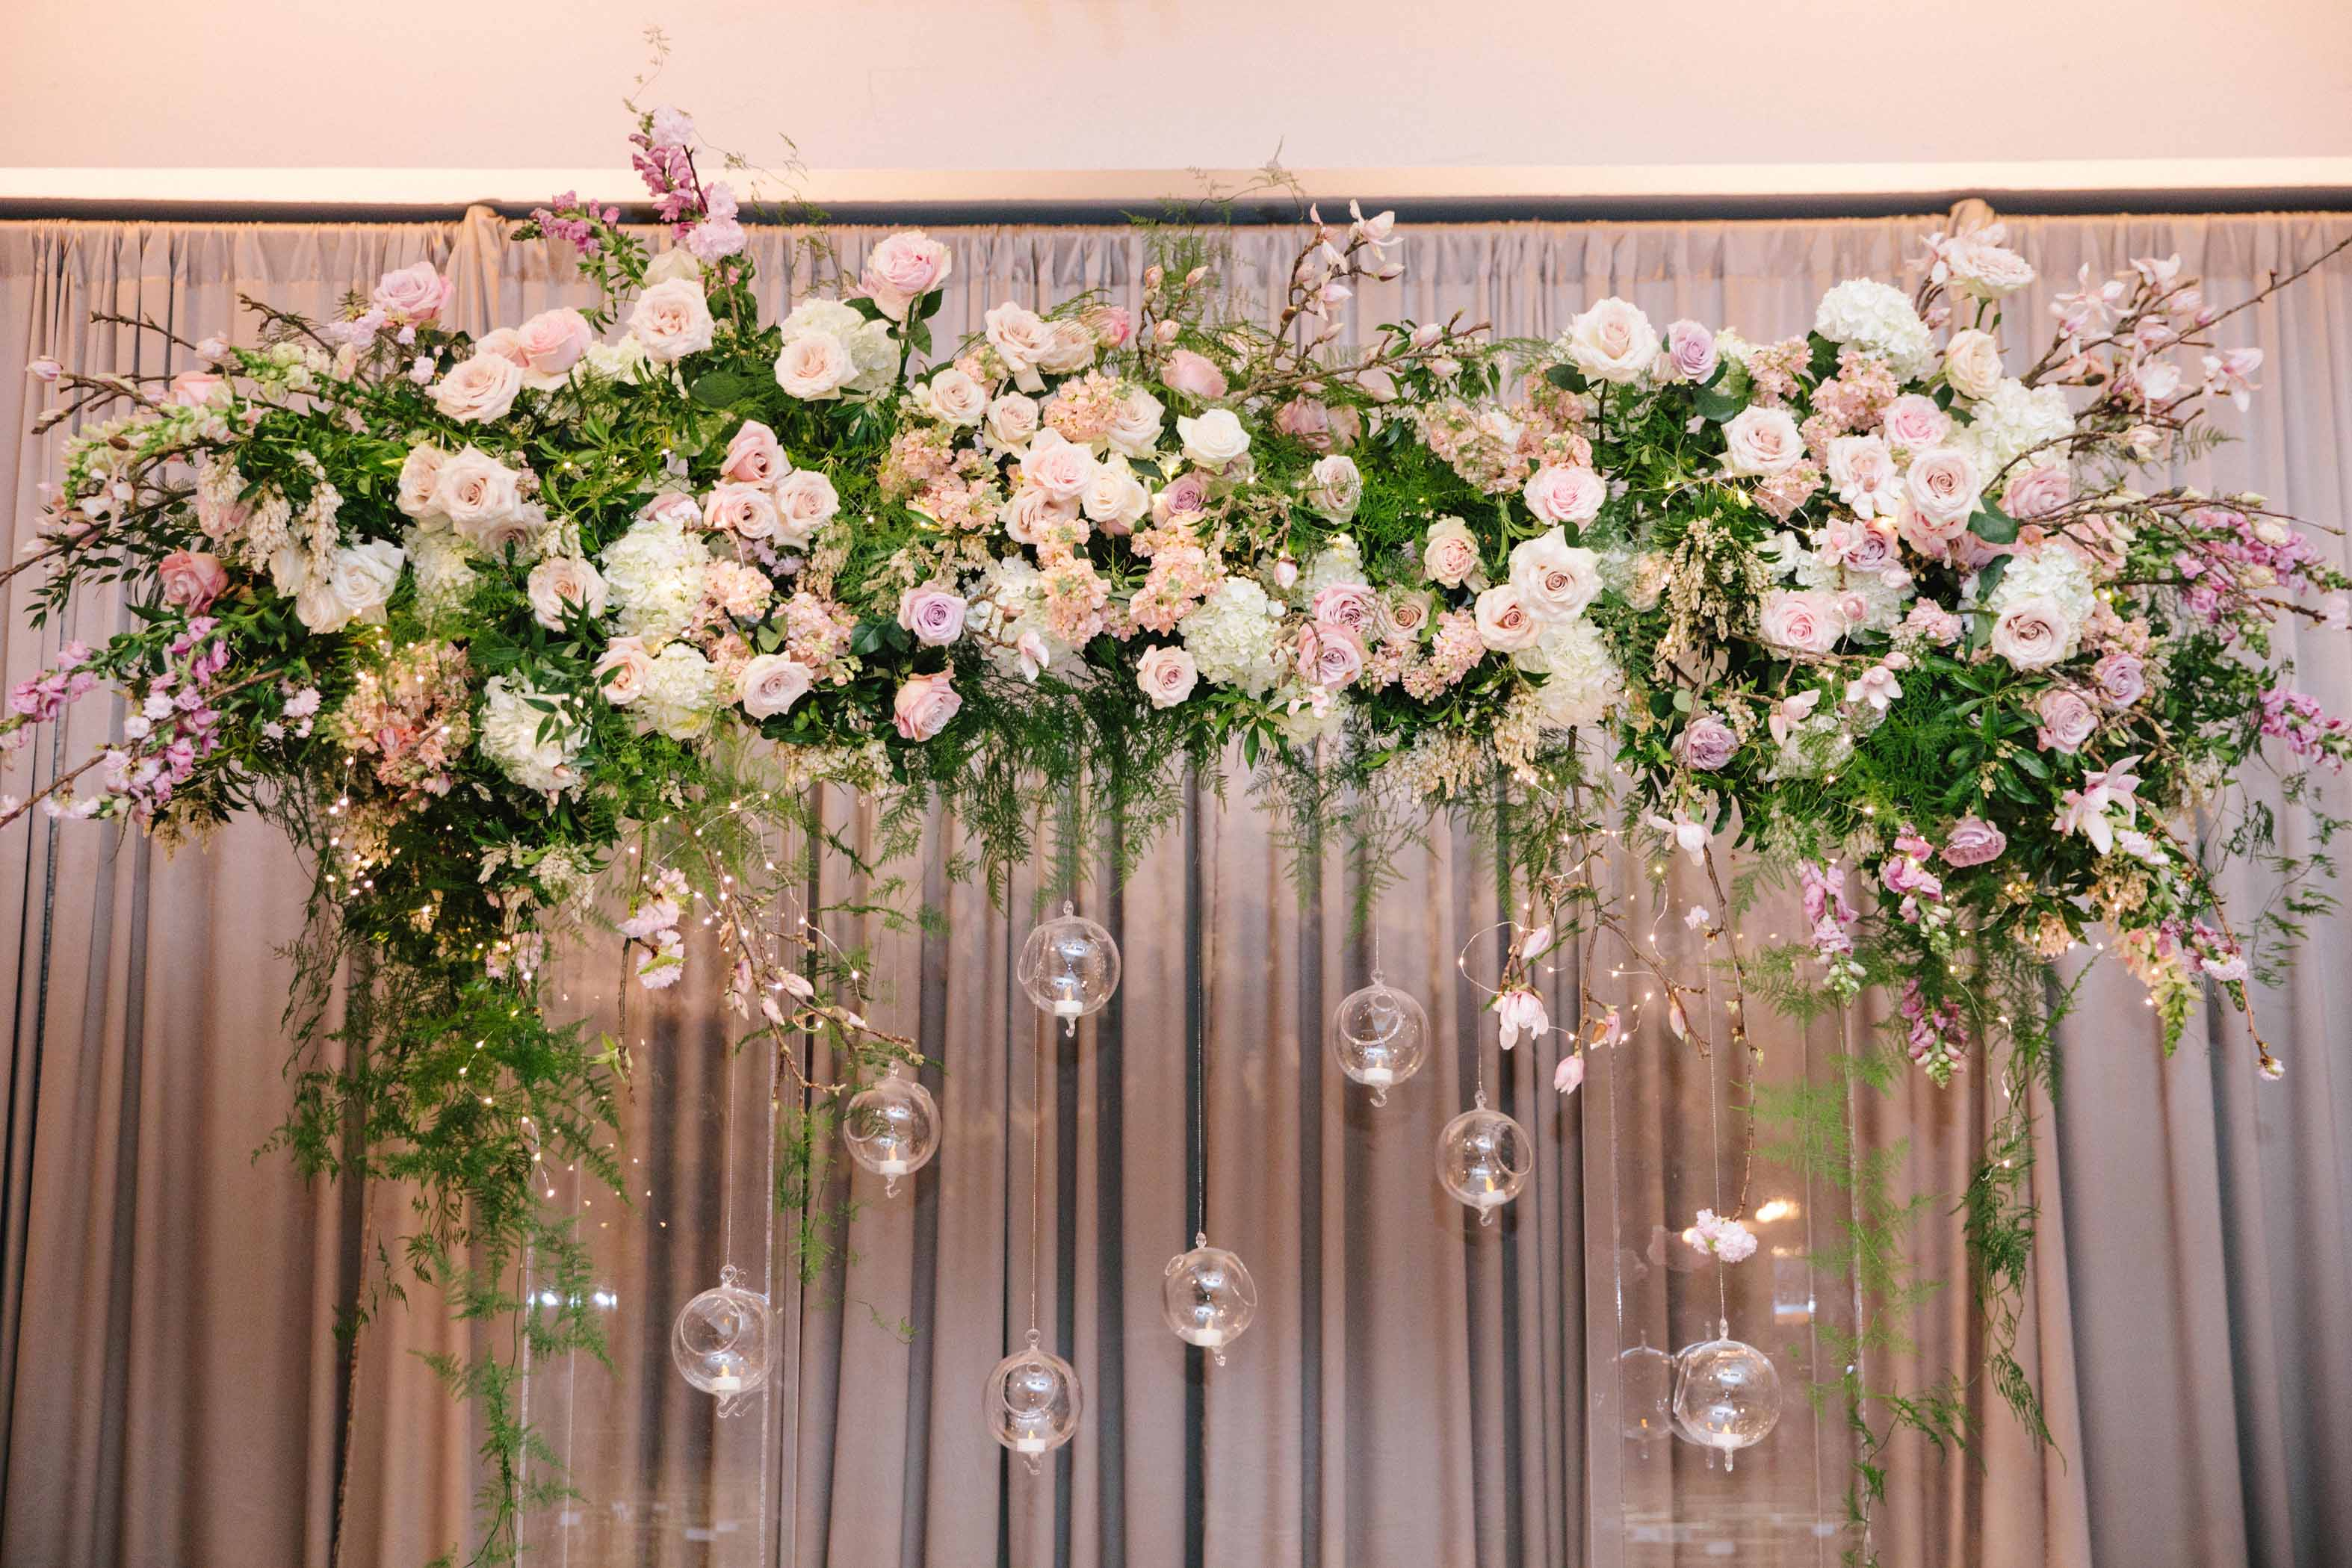 Wedding ceremony floral arch with hanging candles and vines